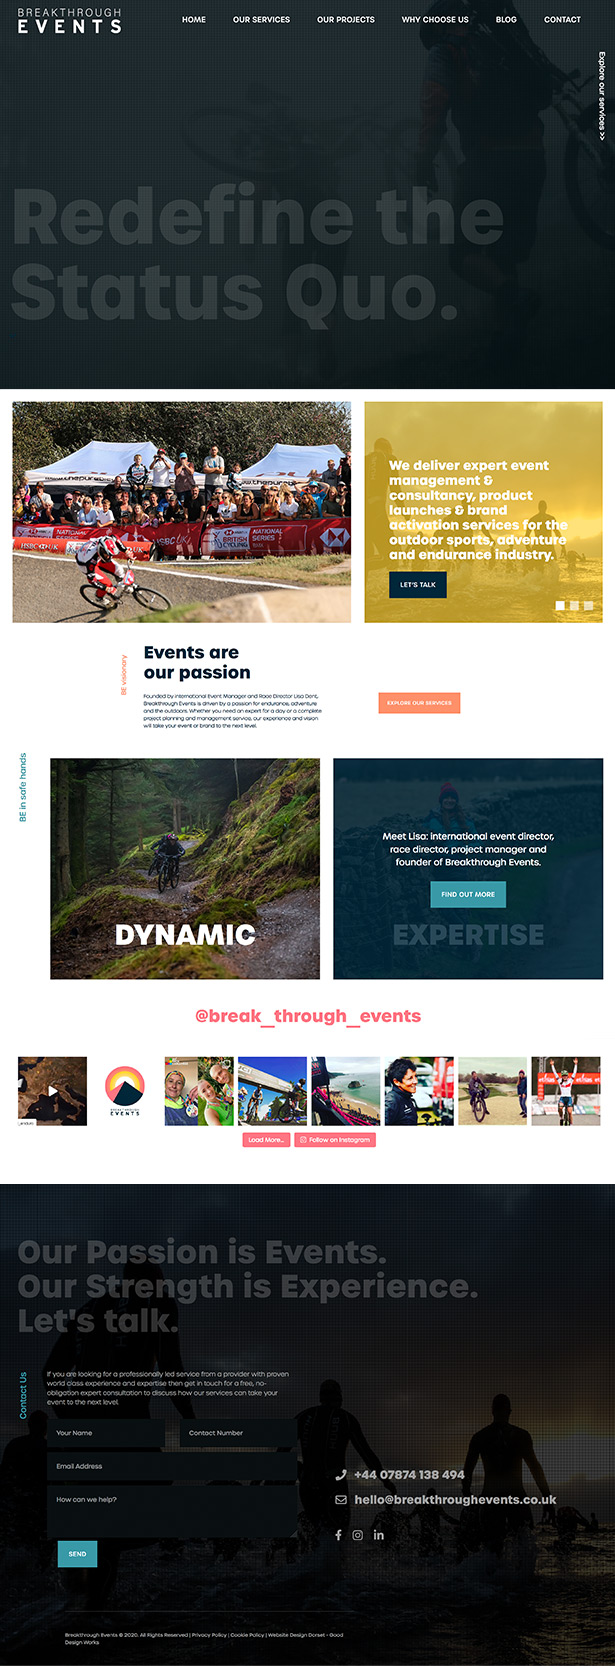 Breakthrough Events Website Design